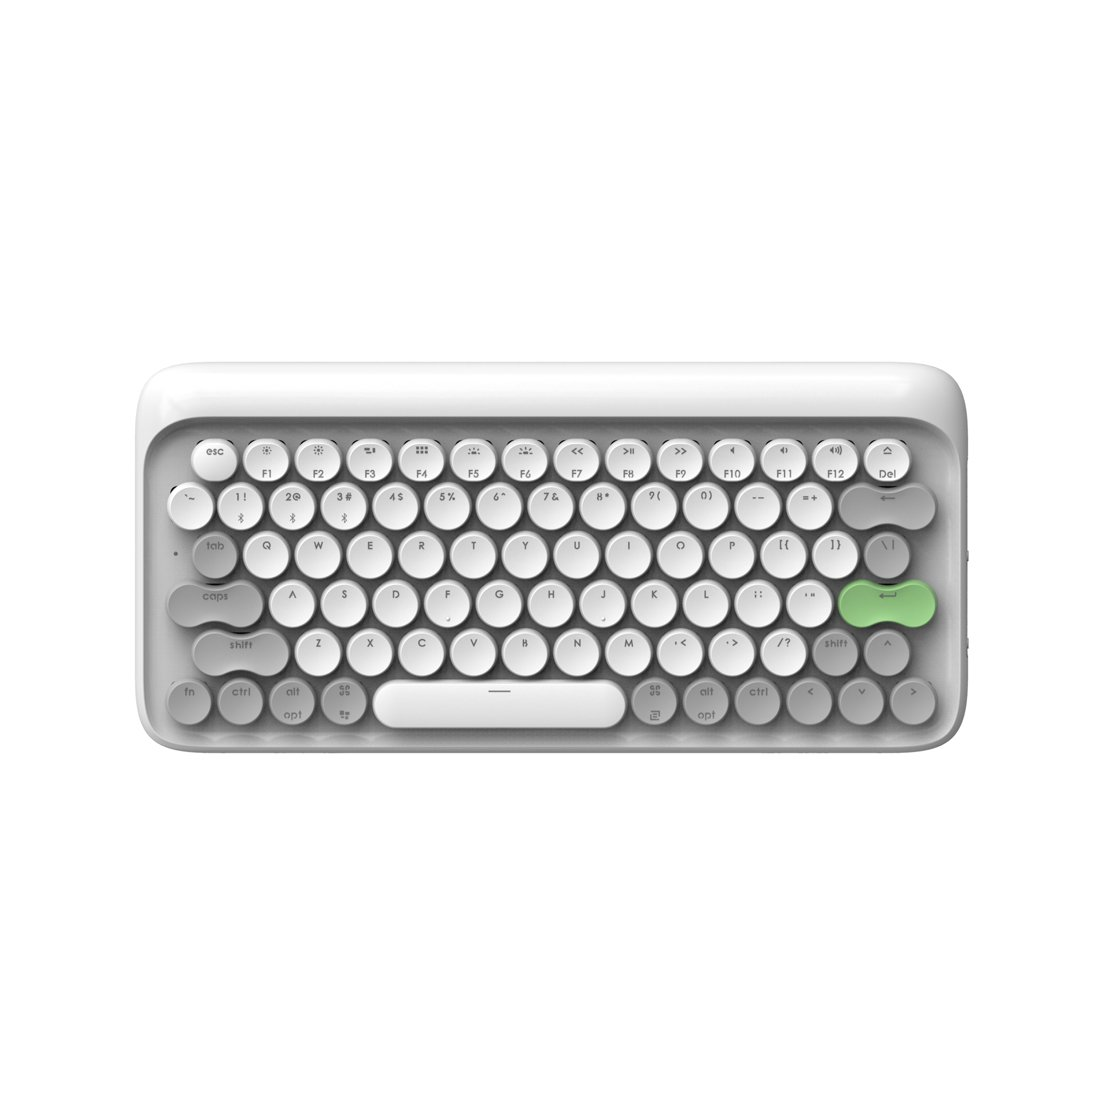 Bluetooth Wireless Mechanical Keyboard, LOFREE Four Seasons Mac Mechanical Keyboard with Gateron Blue Switch/White LED Backlit/Rechargeable Battery,Vintage Retro Keyboard for MacOS,iOS,Windows,Android